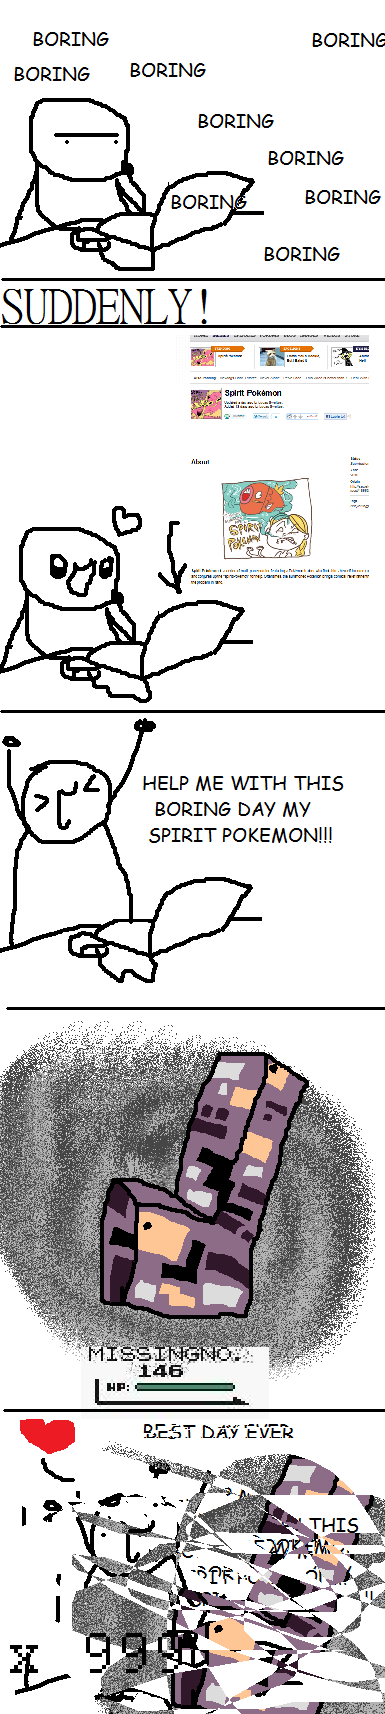 my_spirit_pokemon_by_lordofdragonss-d36epip.png